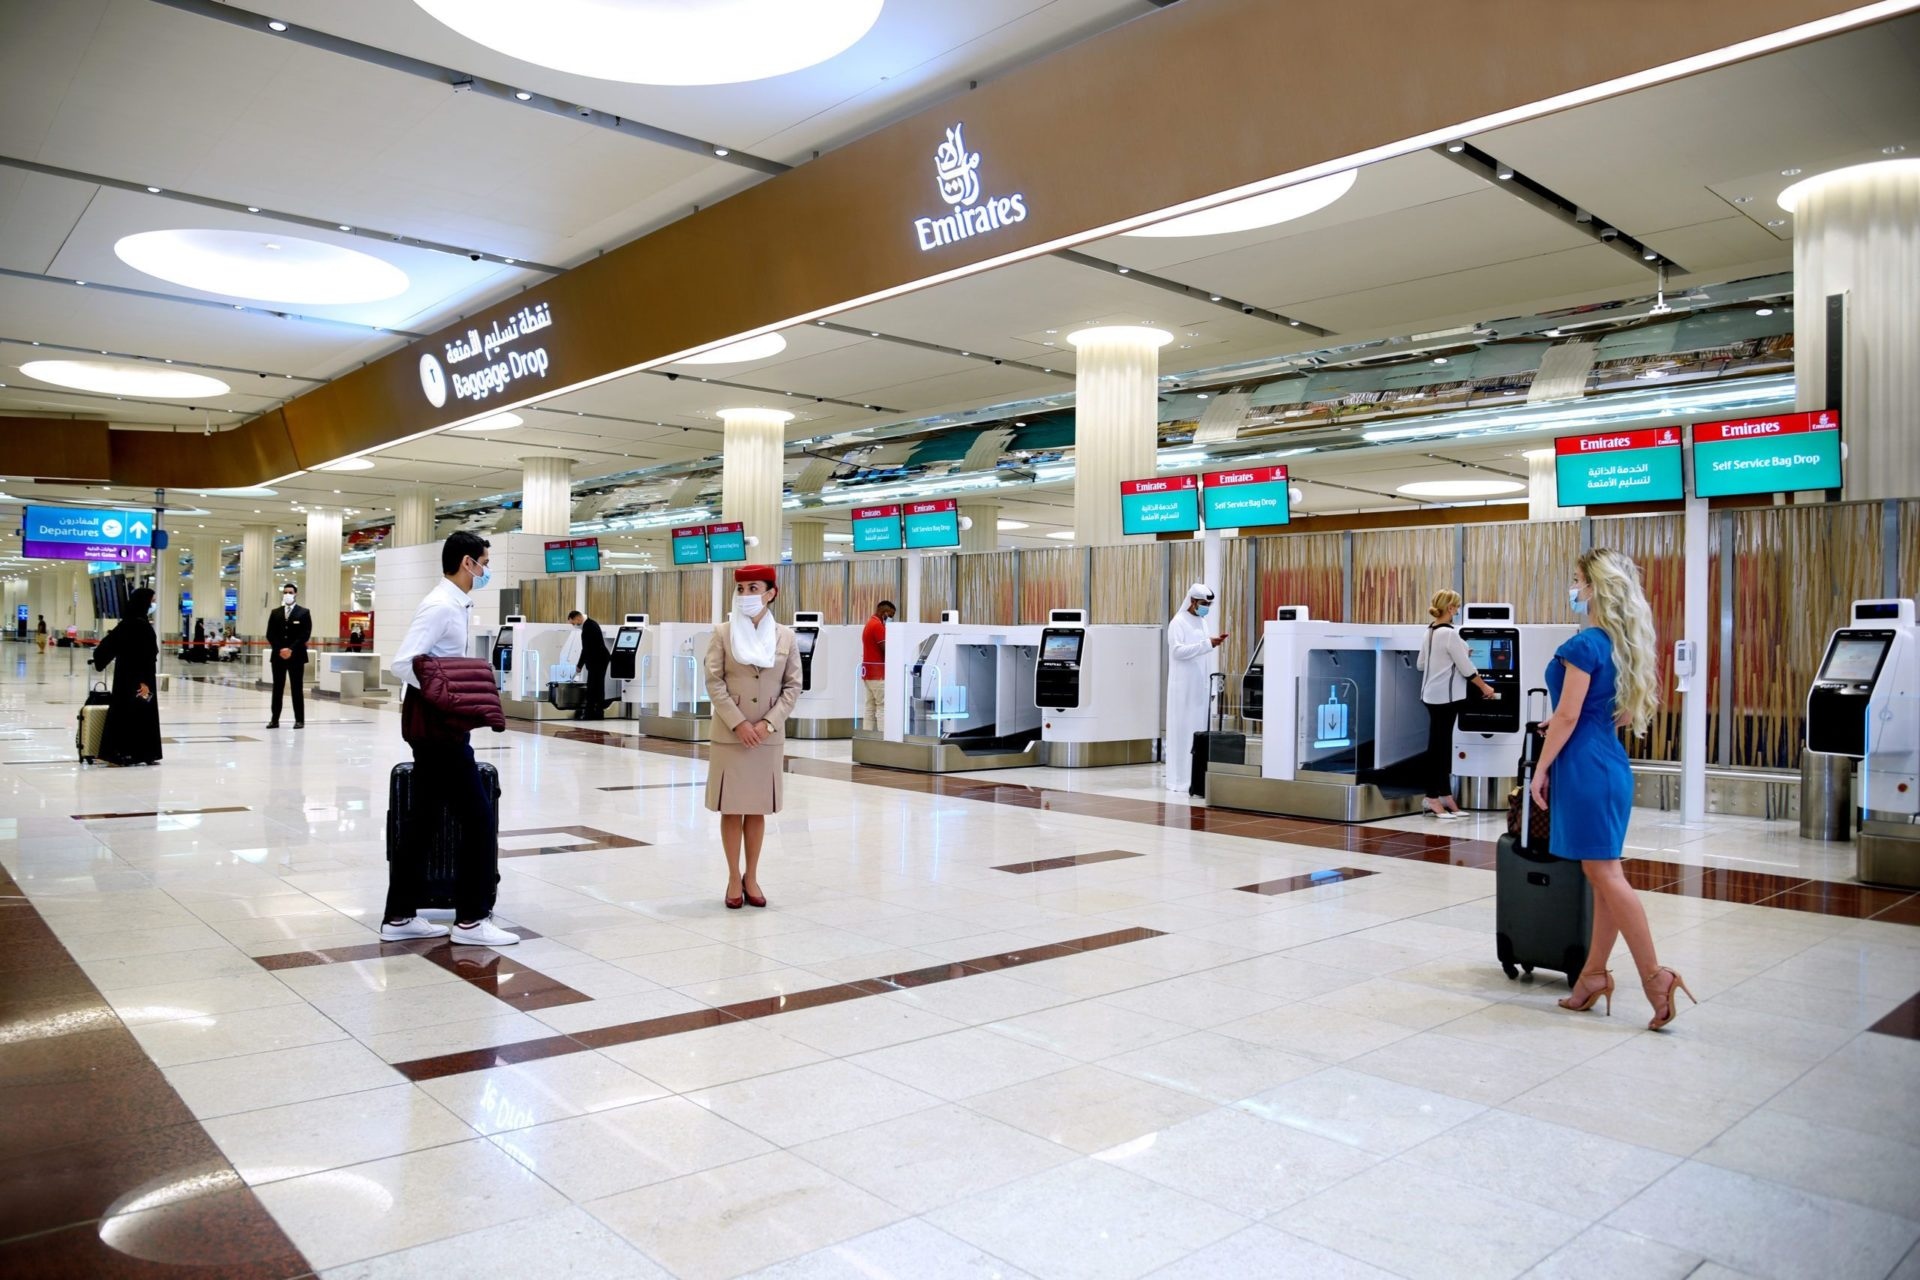 Emirates check-in